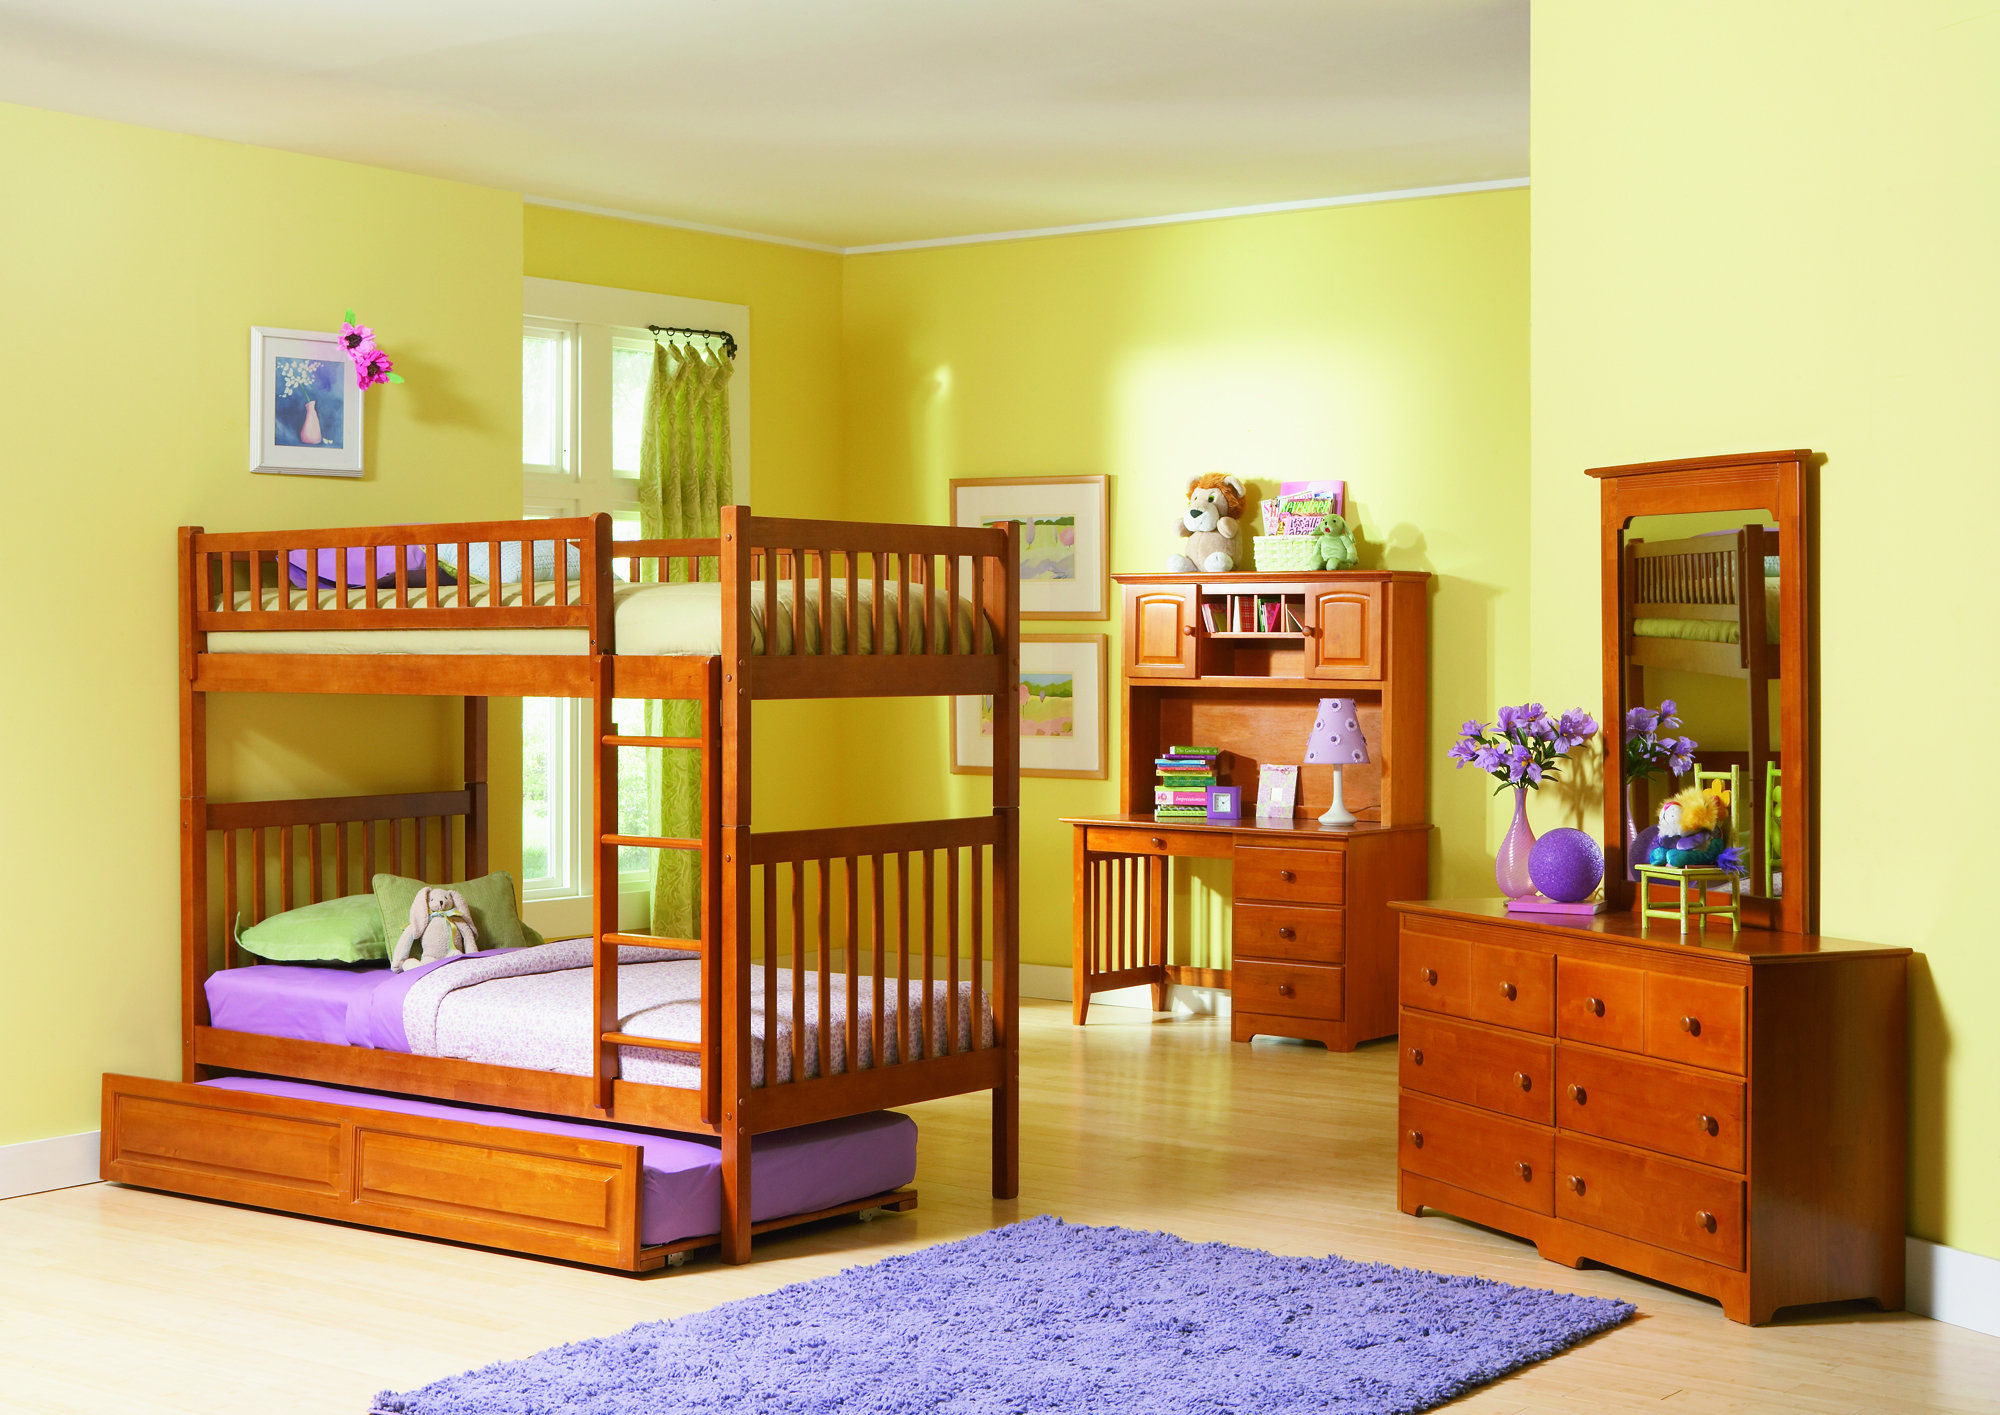 Genial Astonishing Design Of The Bedroom Areas With Brown Wooden Bunk Bed And  Purple Rugs And Brown